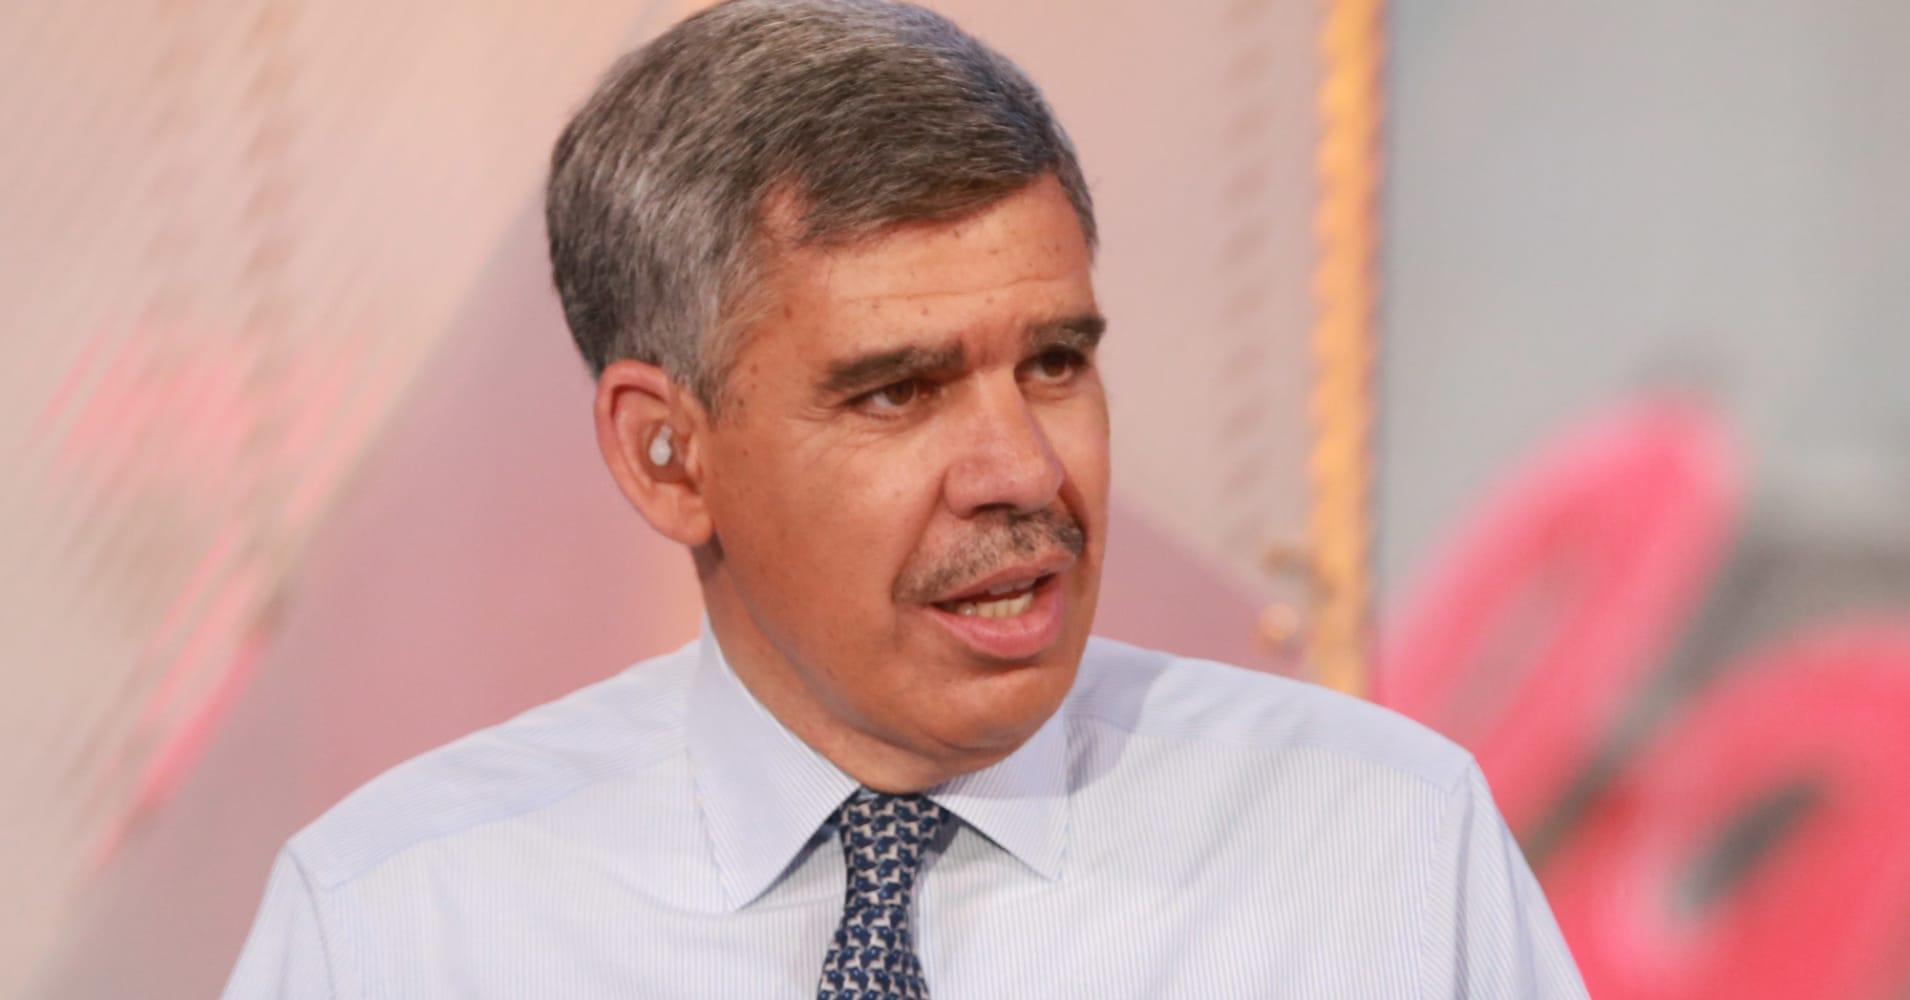 El-Erian: The Fed will have to go through with four rate hikes